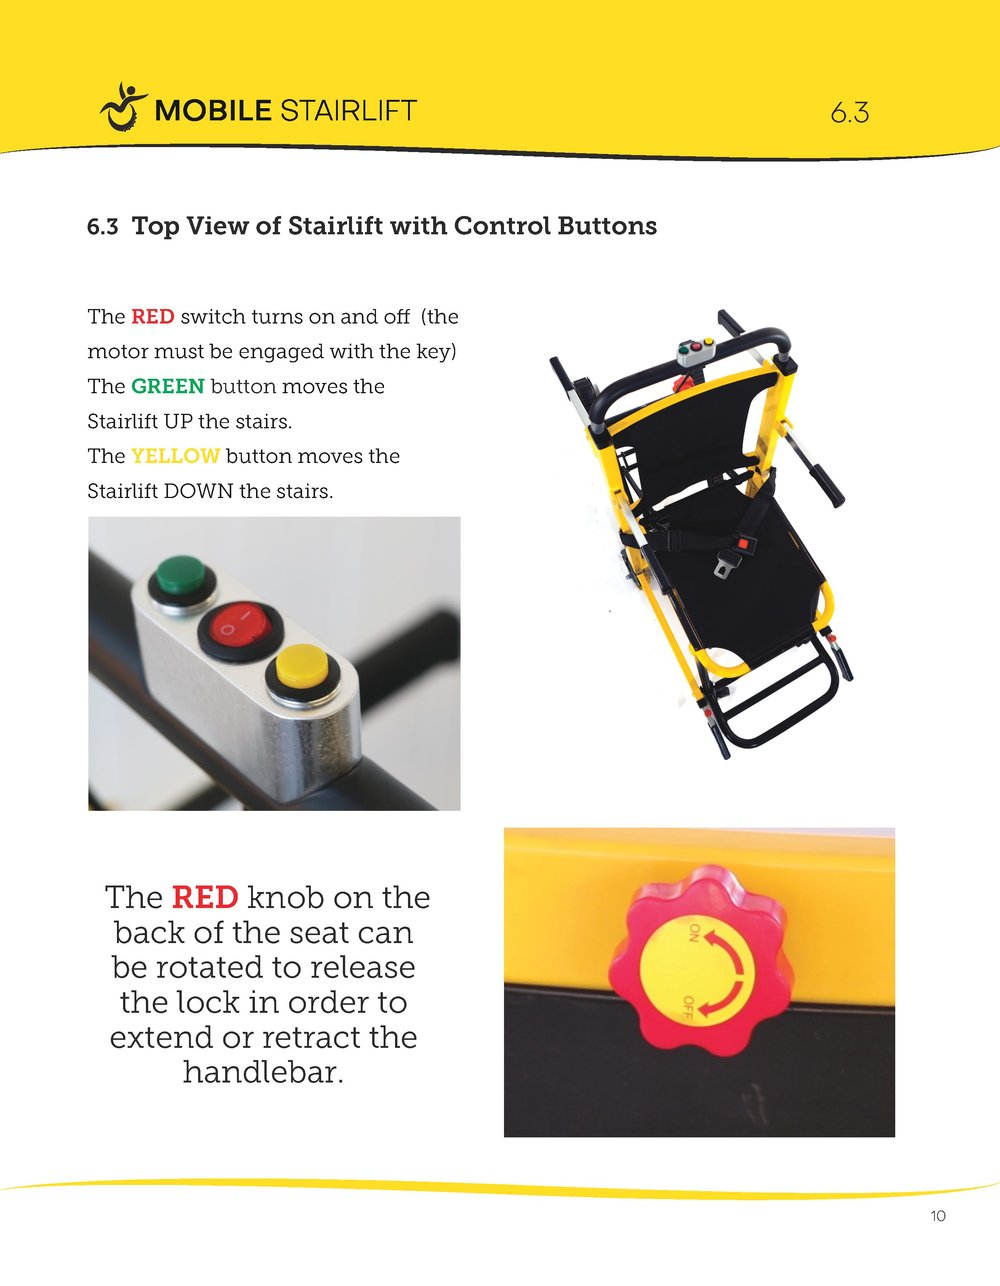 Mobile Stairlift Instruction Manual-11.jpg